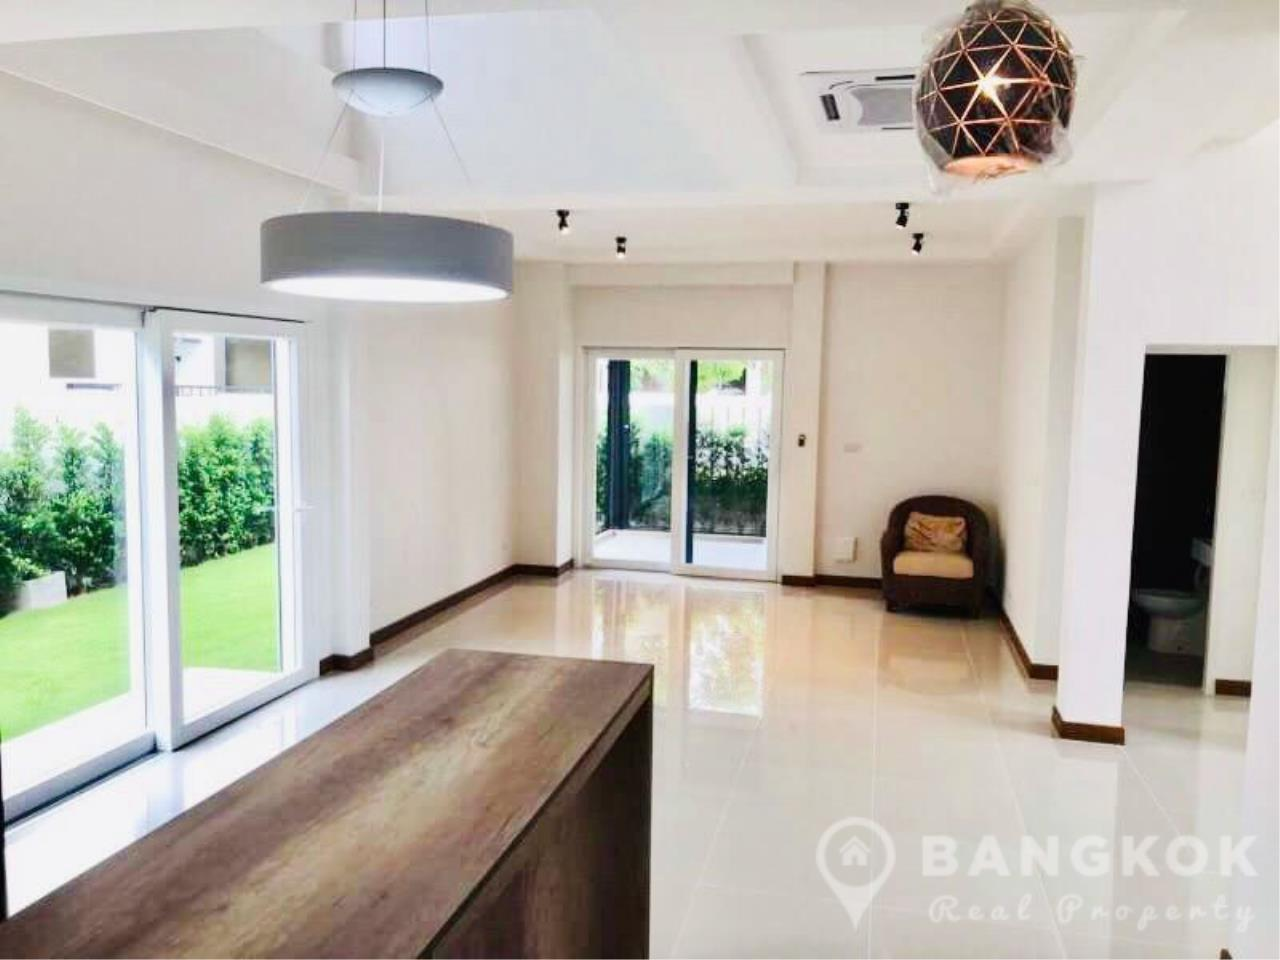 Bangkok Real Property Agency's Brand New Detached 4 Bed 4 Bath House just off Srinakarin Road 1